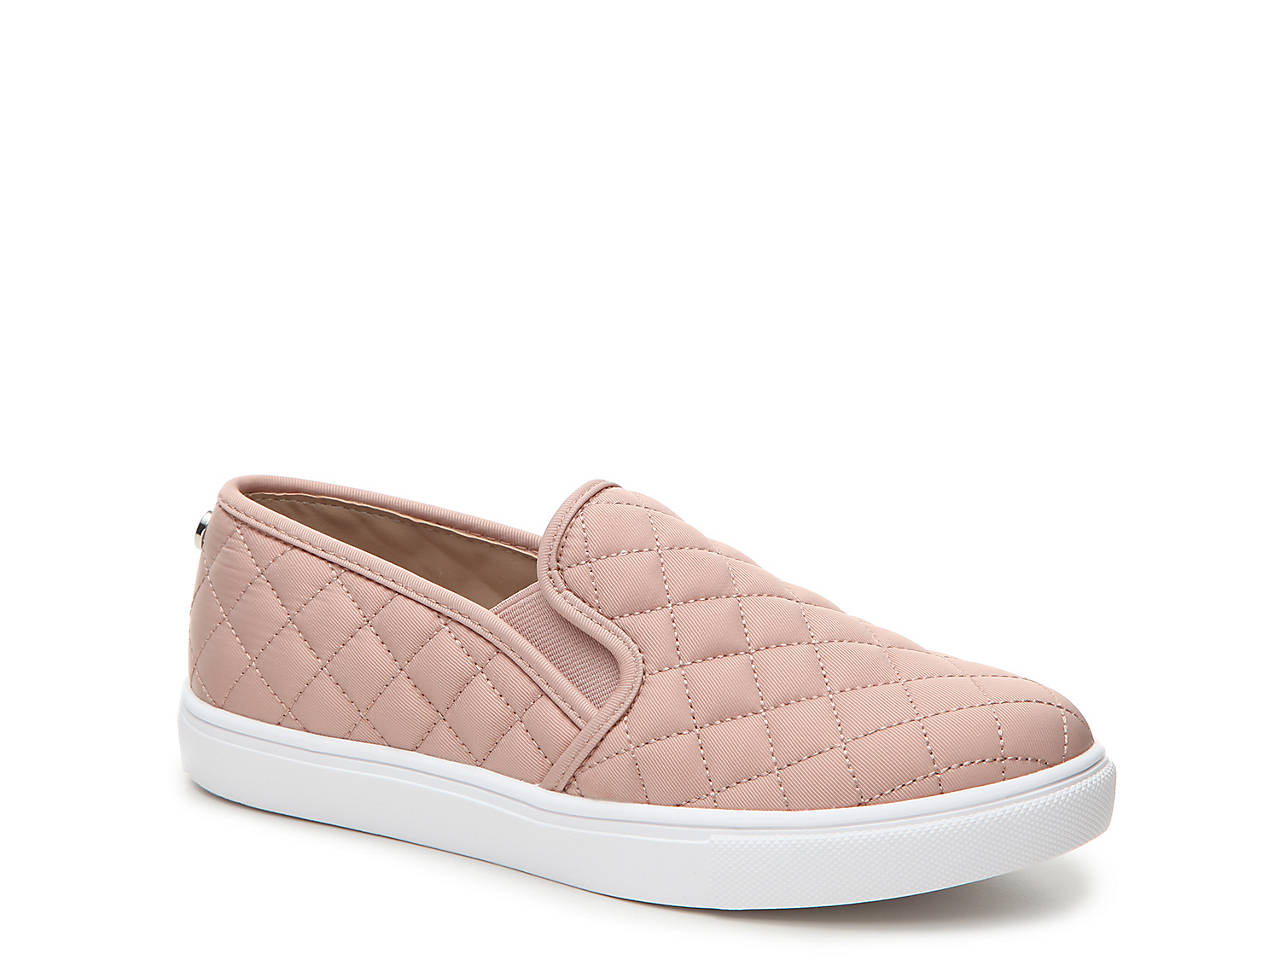 c30677b8161 Steve Madden Ecentrcq Slip-On Sneaker Women s Shoes